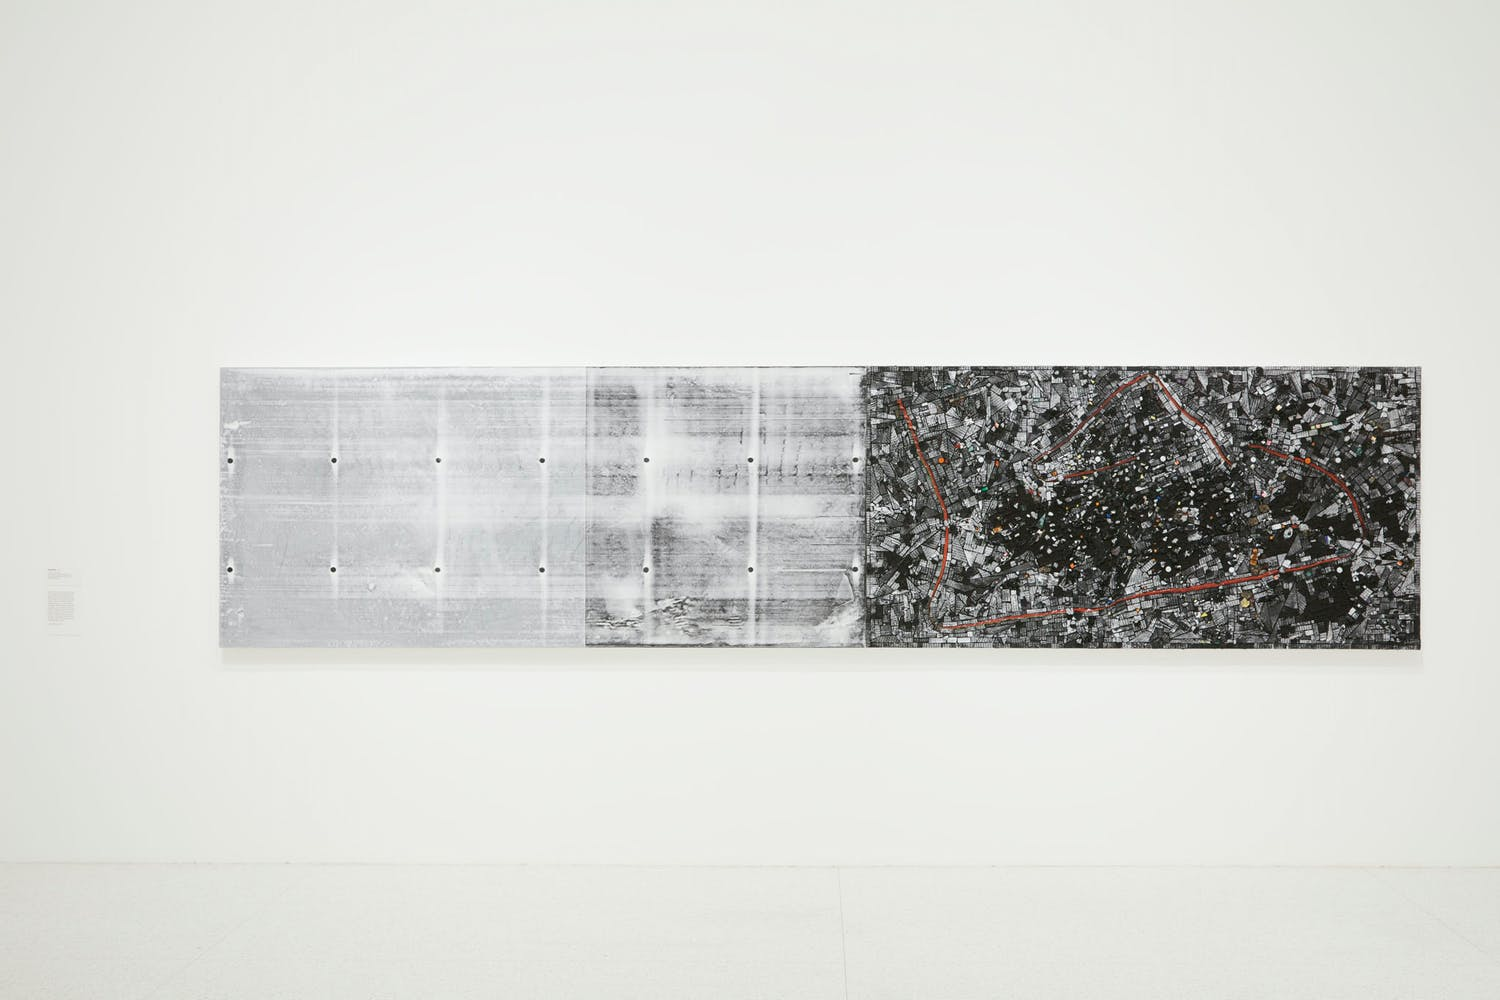 View of the exhibition Jack Whitten: Five Decades of Painting, 2015; Jack Whitten, Soul Map, 2015